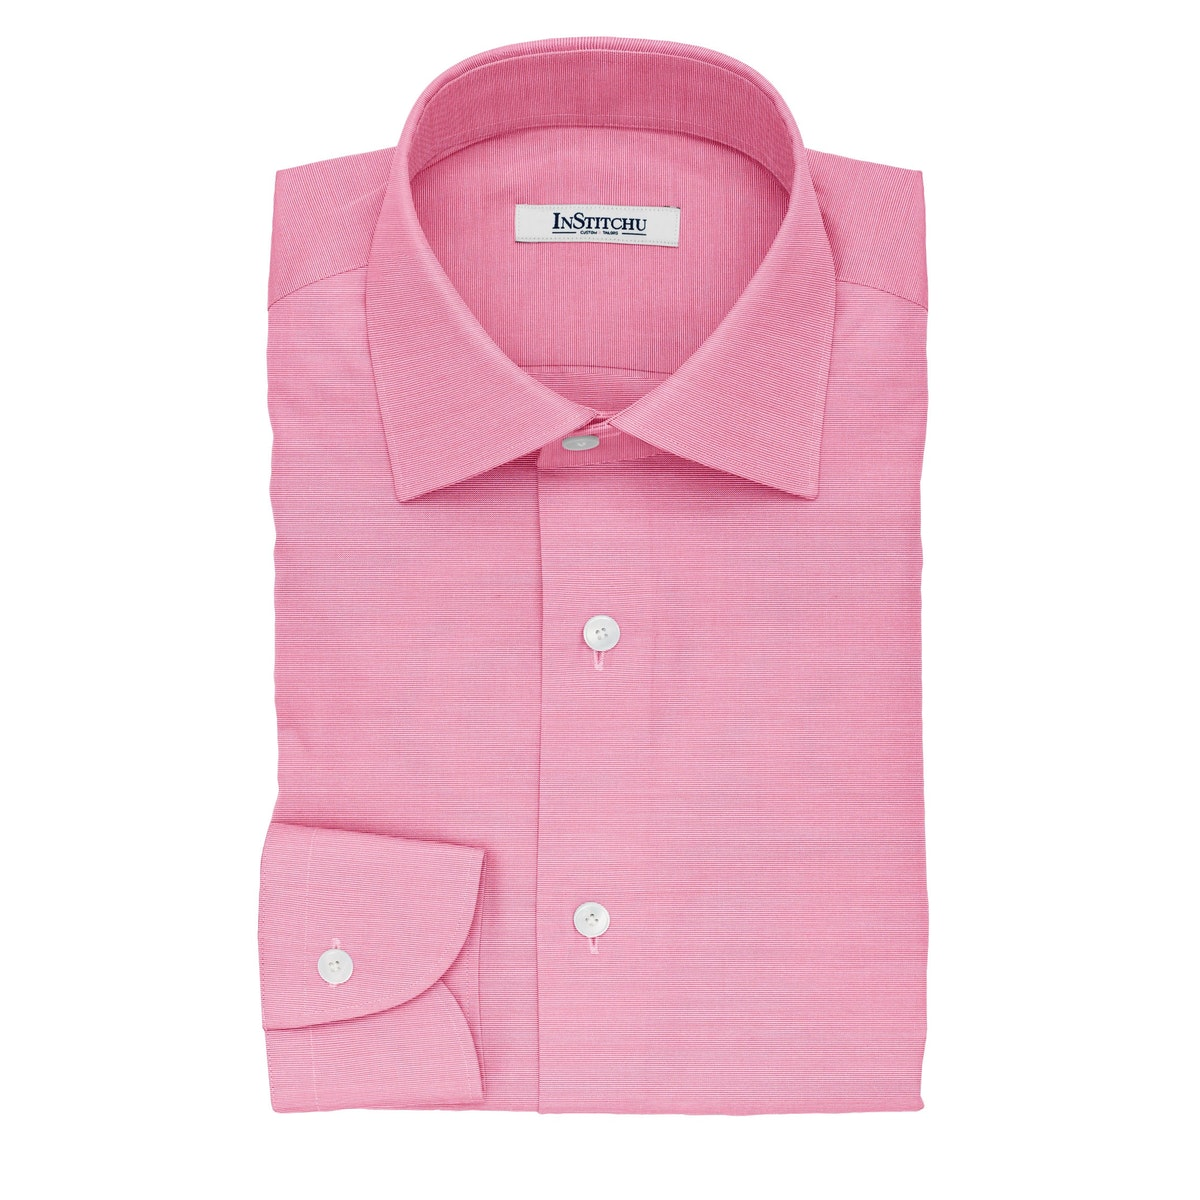 InStitchu Collection The Benson Pink and White Striped Cotton Shirt